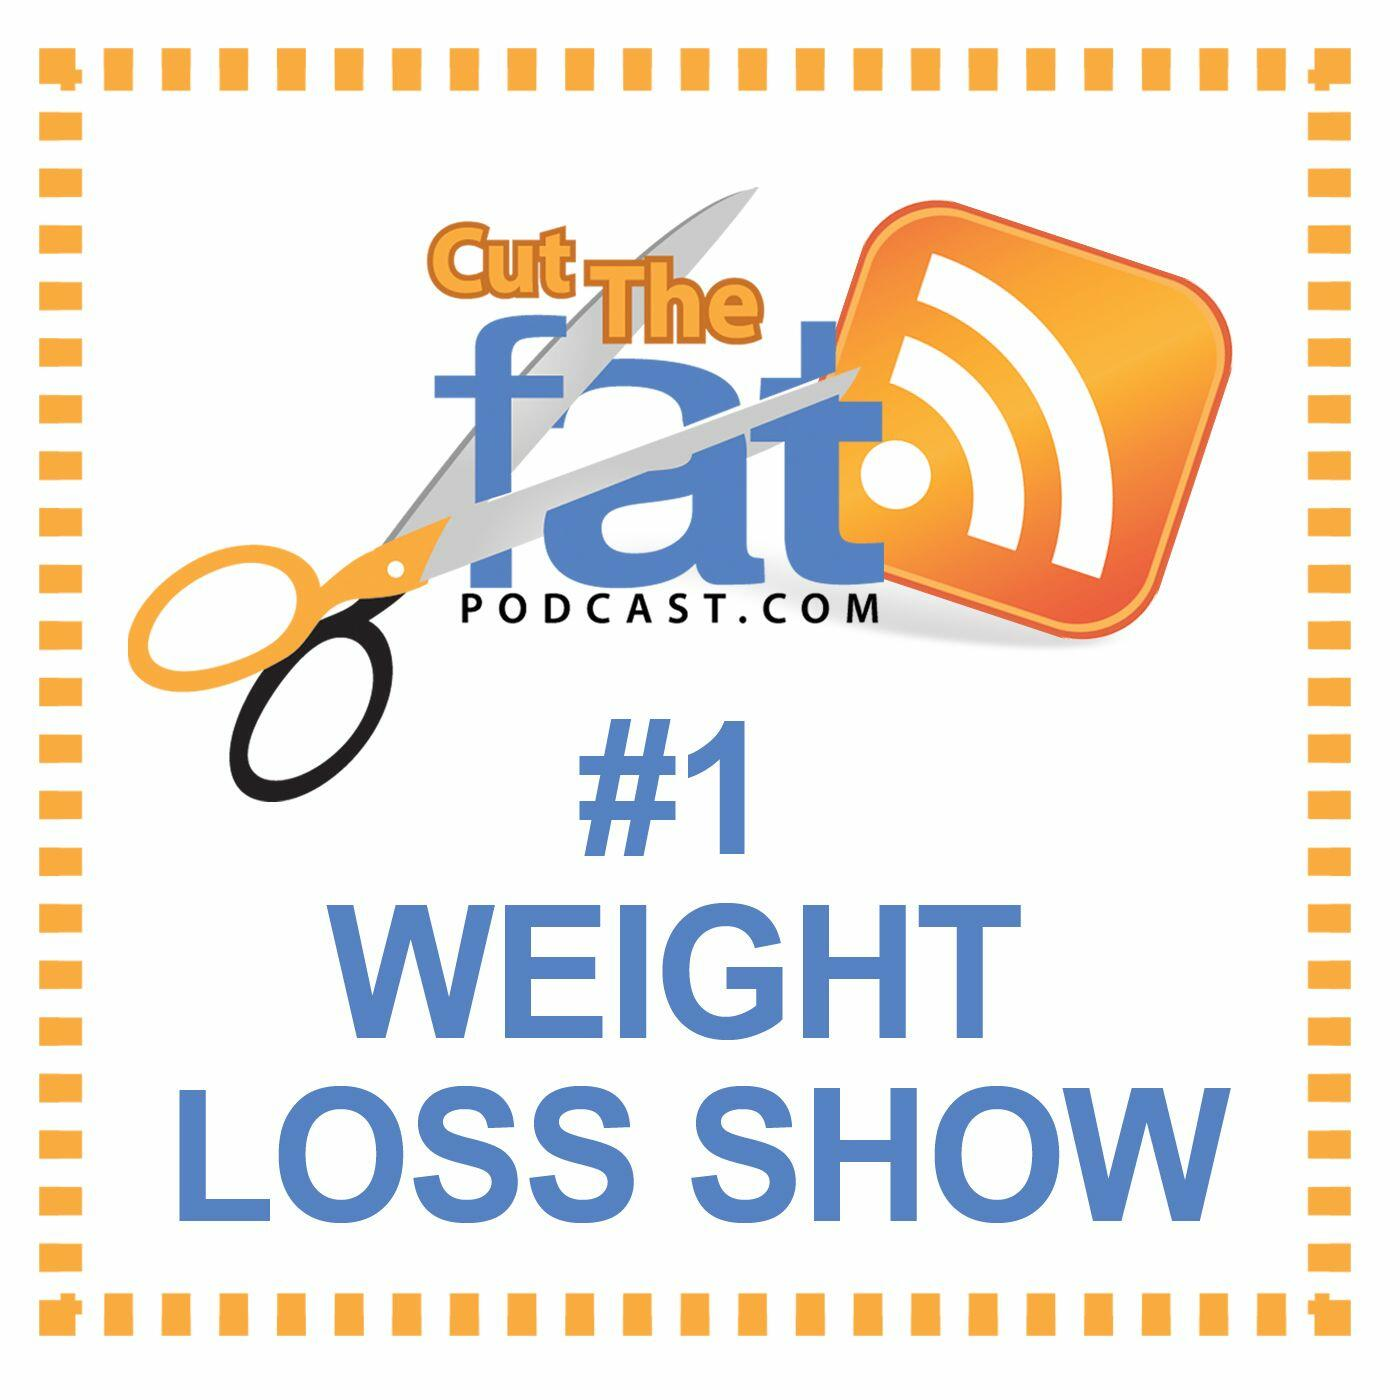 Cut The Fat Podcast - Weight Loss